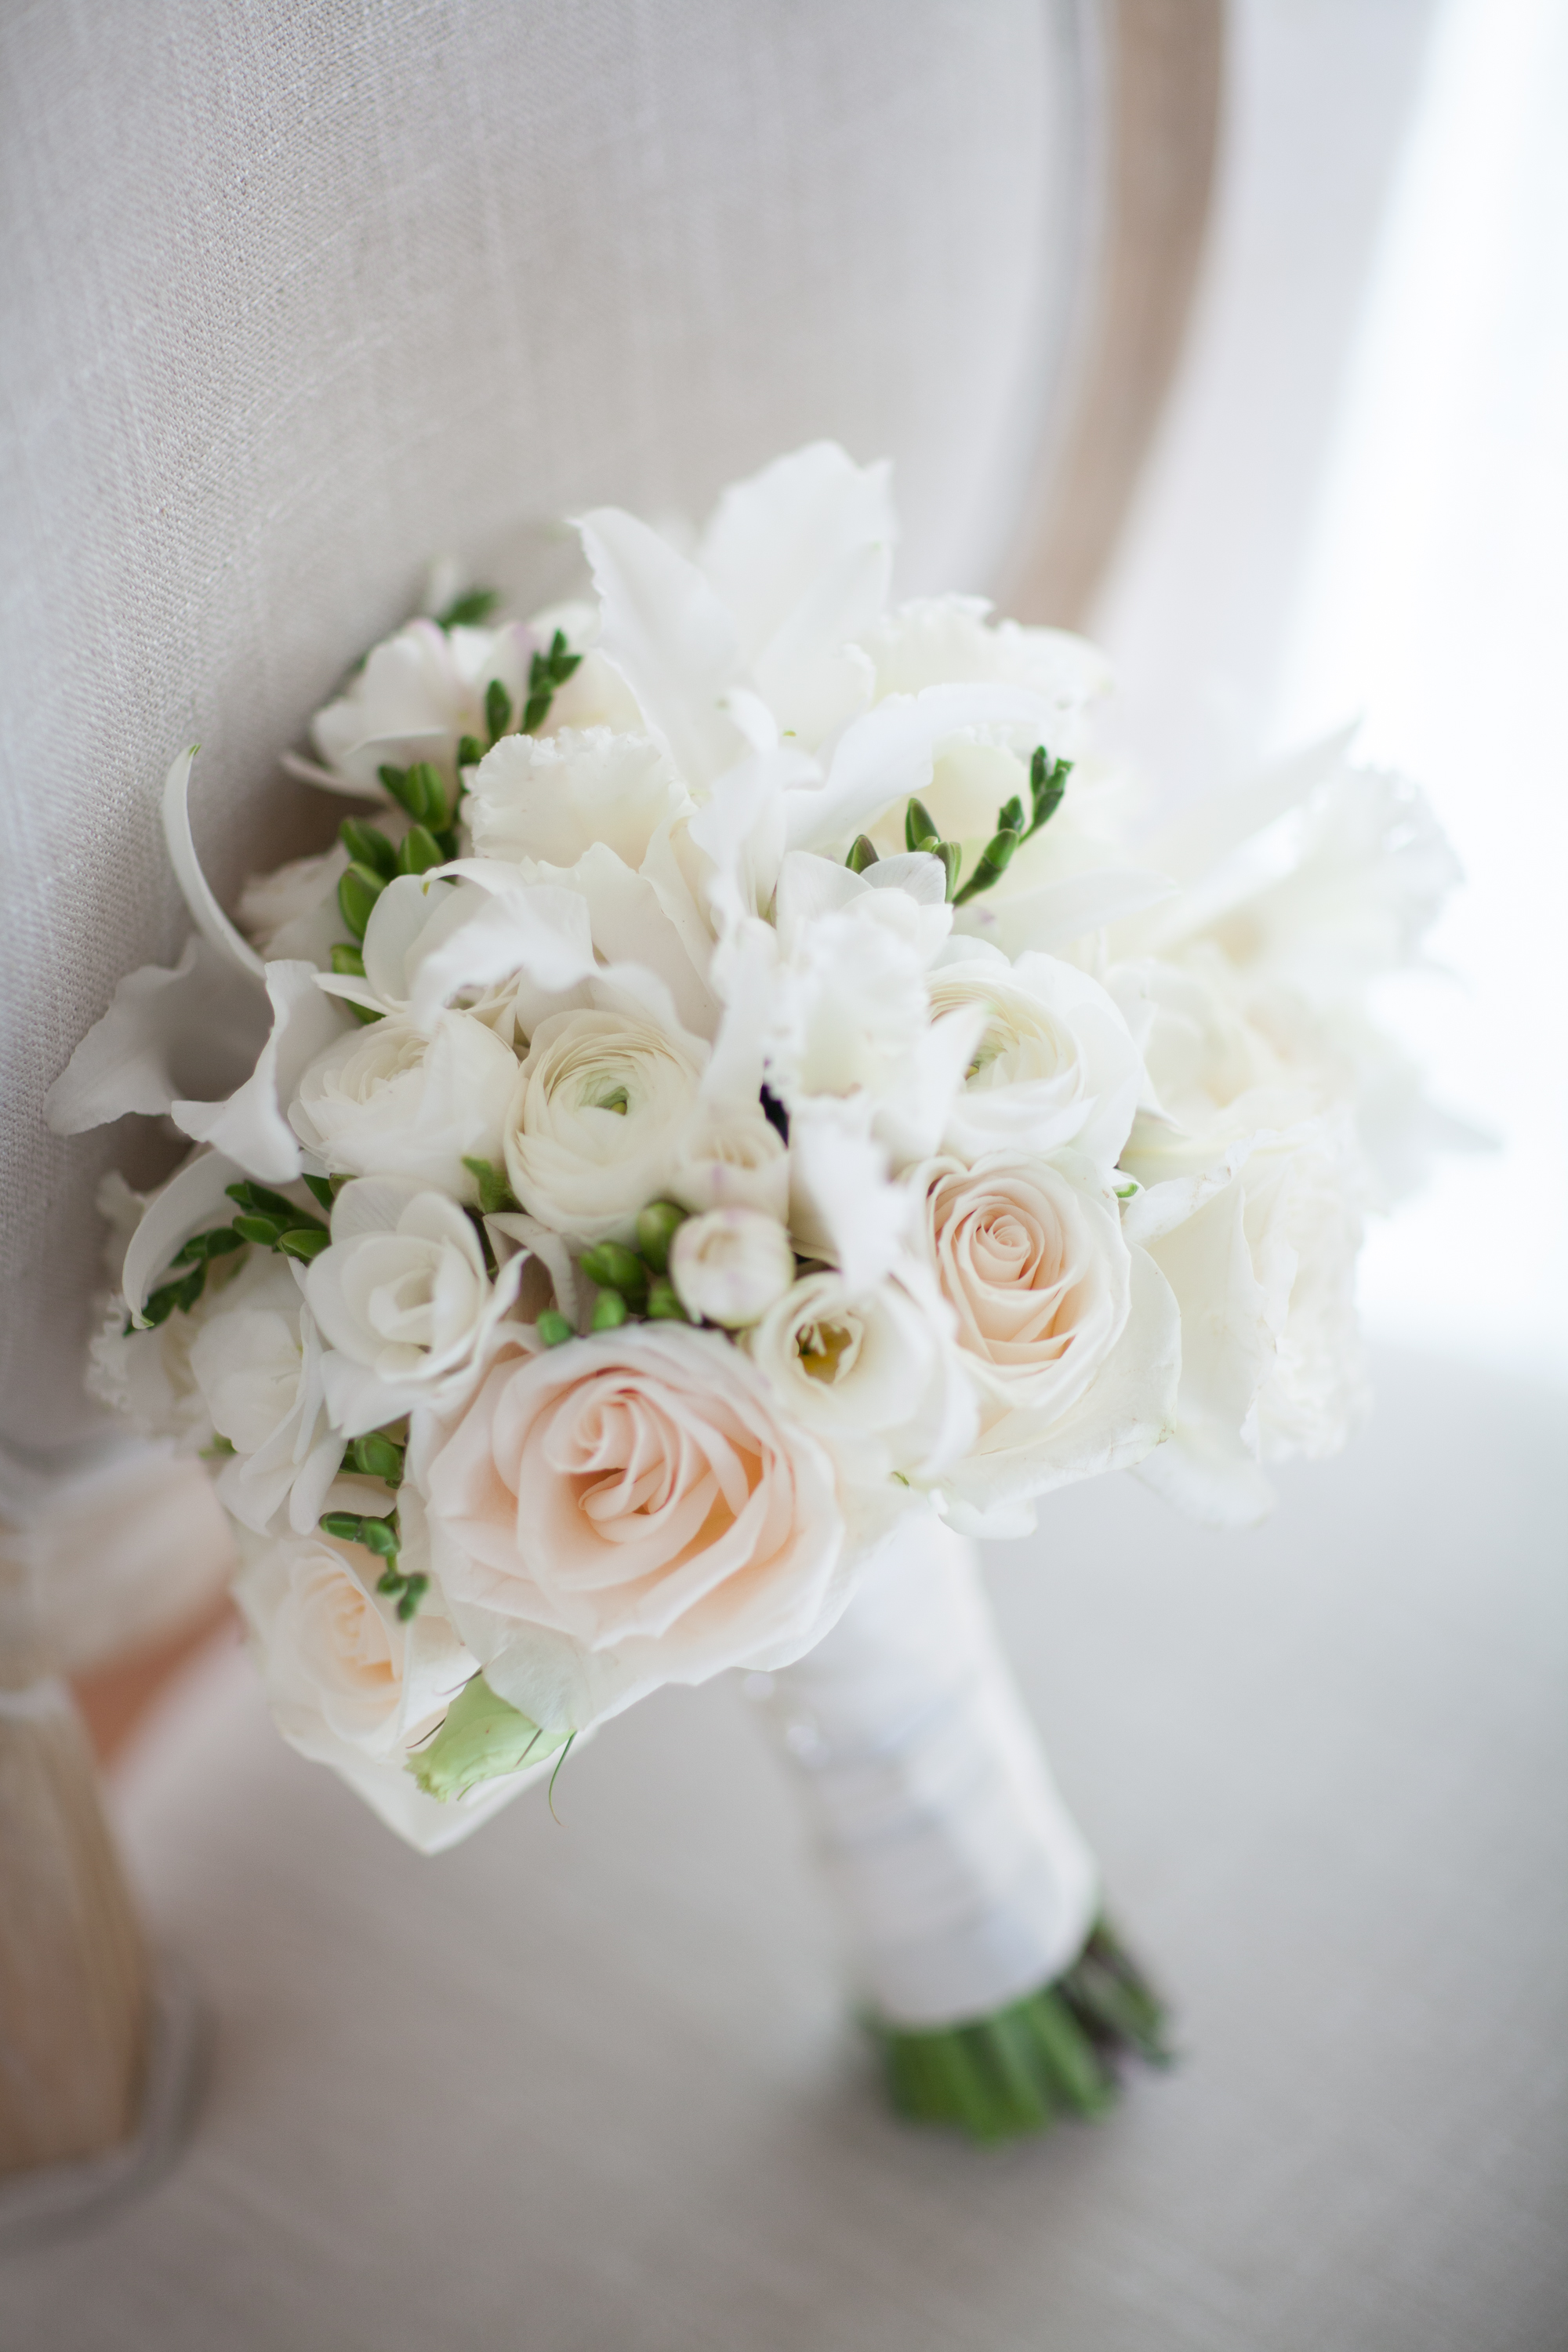 Cody Floral Design in Santa Barbara | Melissa Musgrove Photography